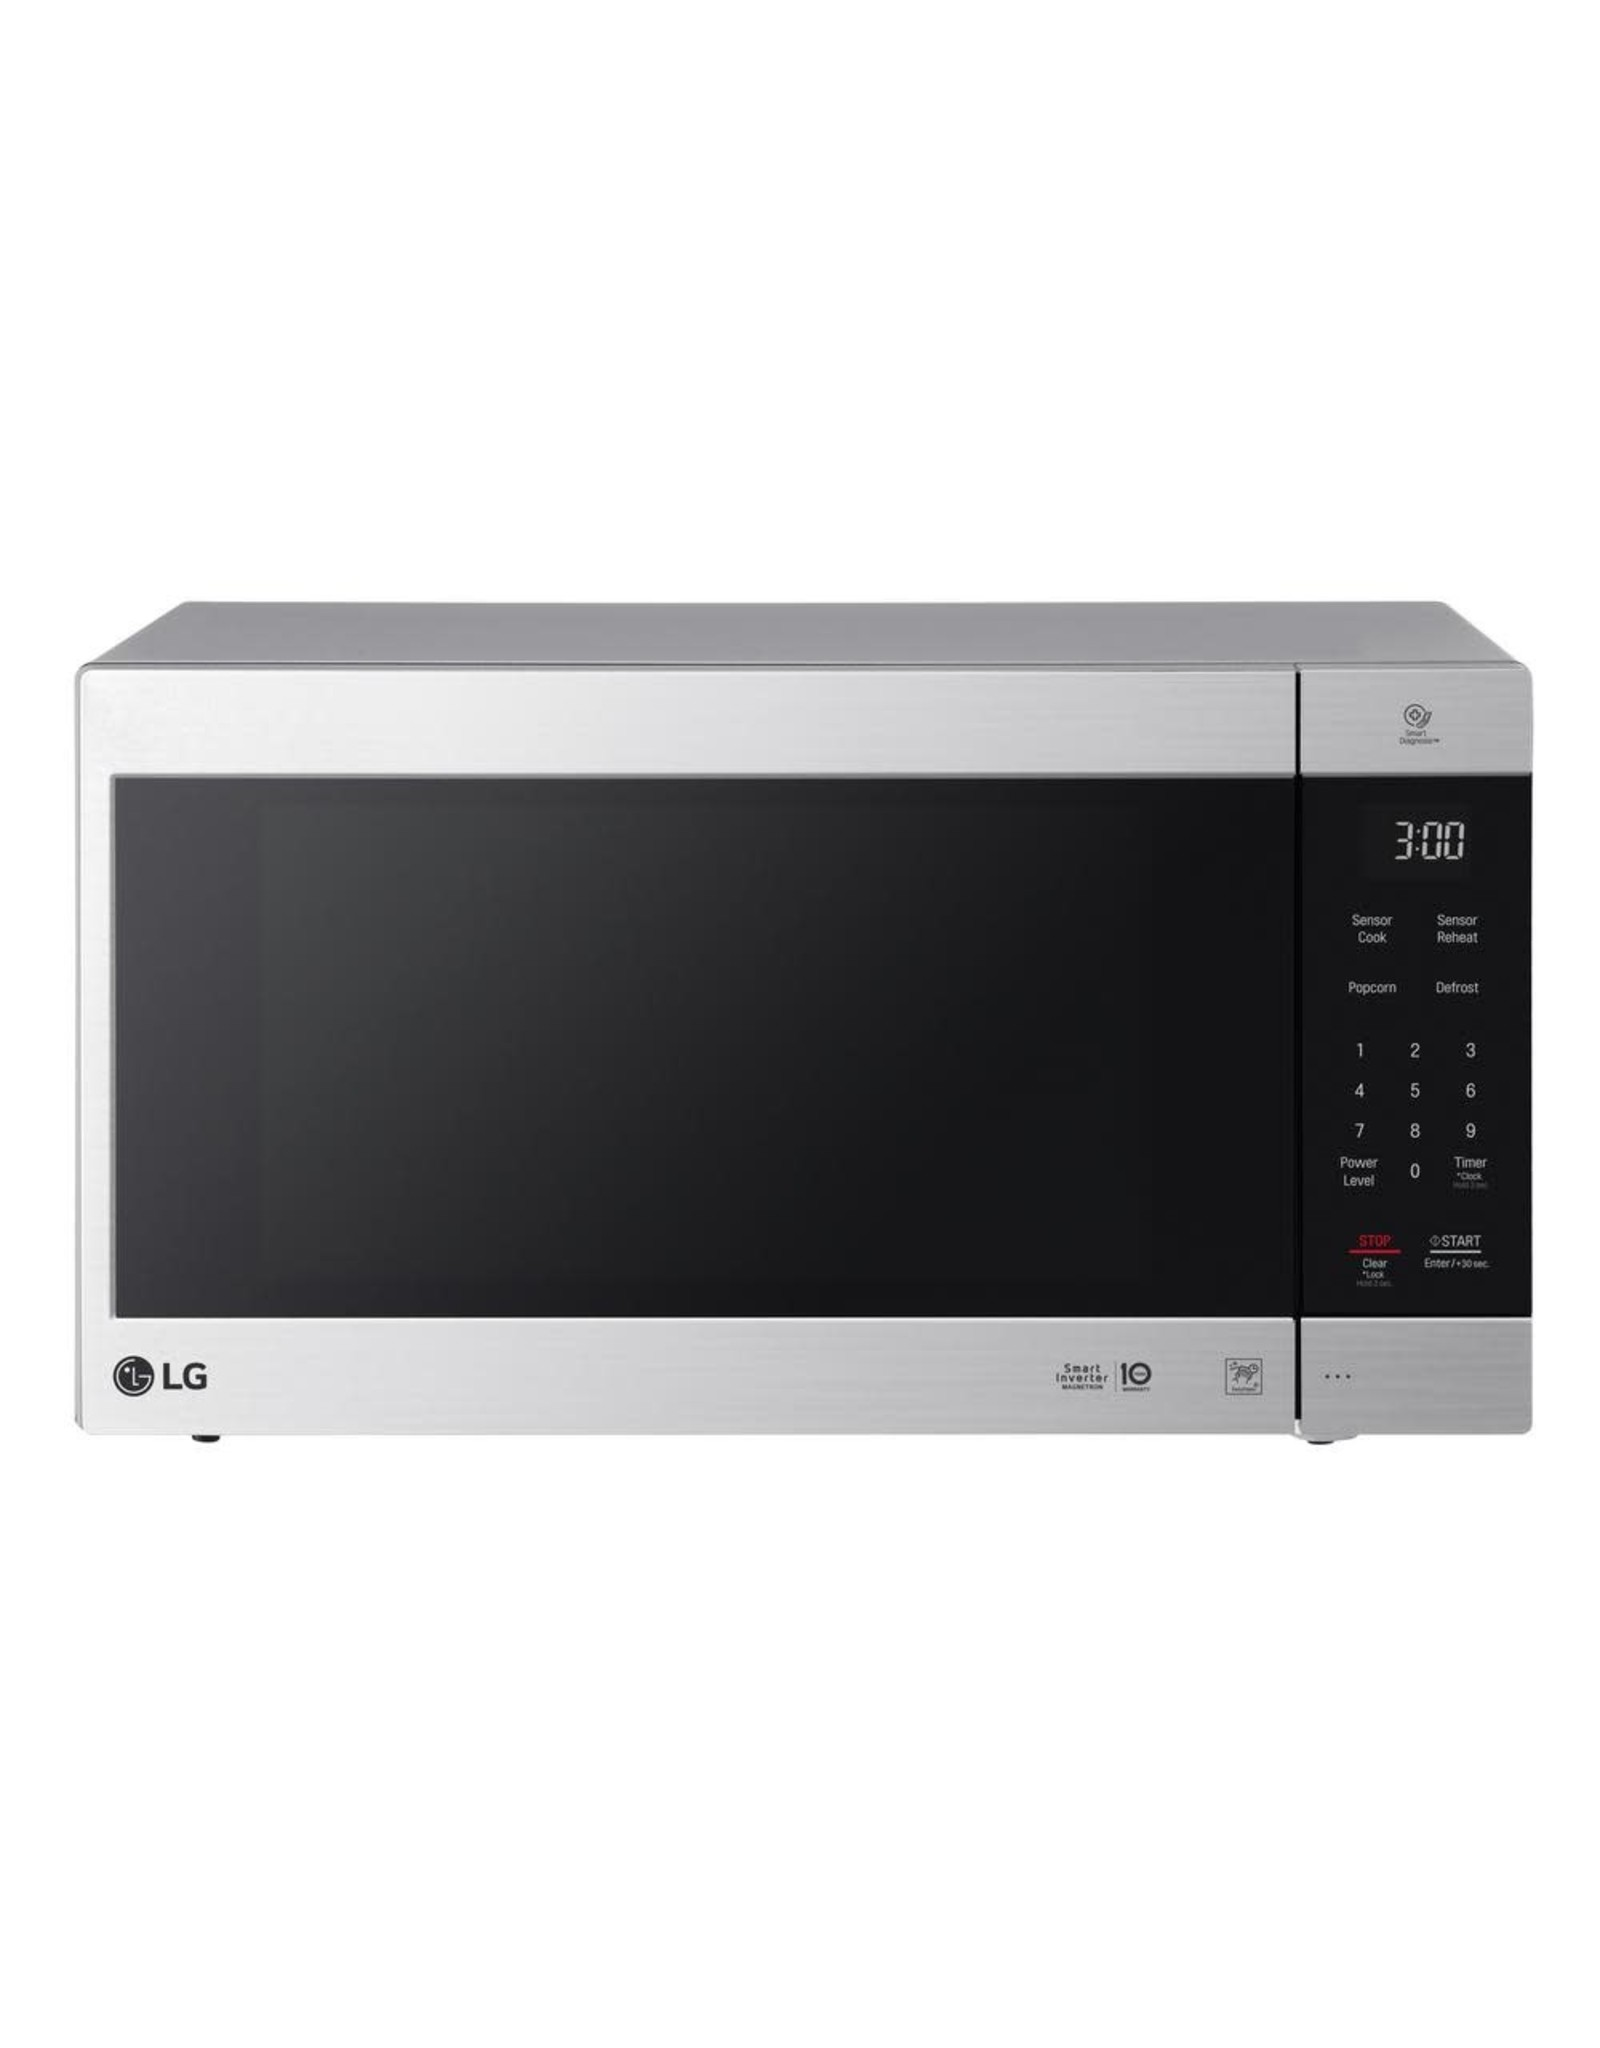 lg electronics lmc2075st neochef 2 0 cu ft countertop microwave in stainless steel